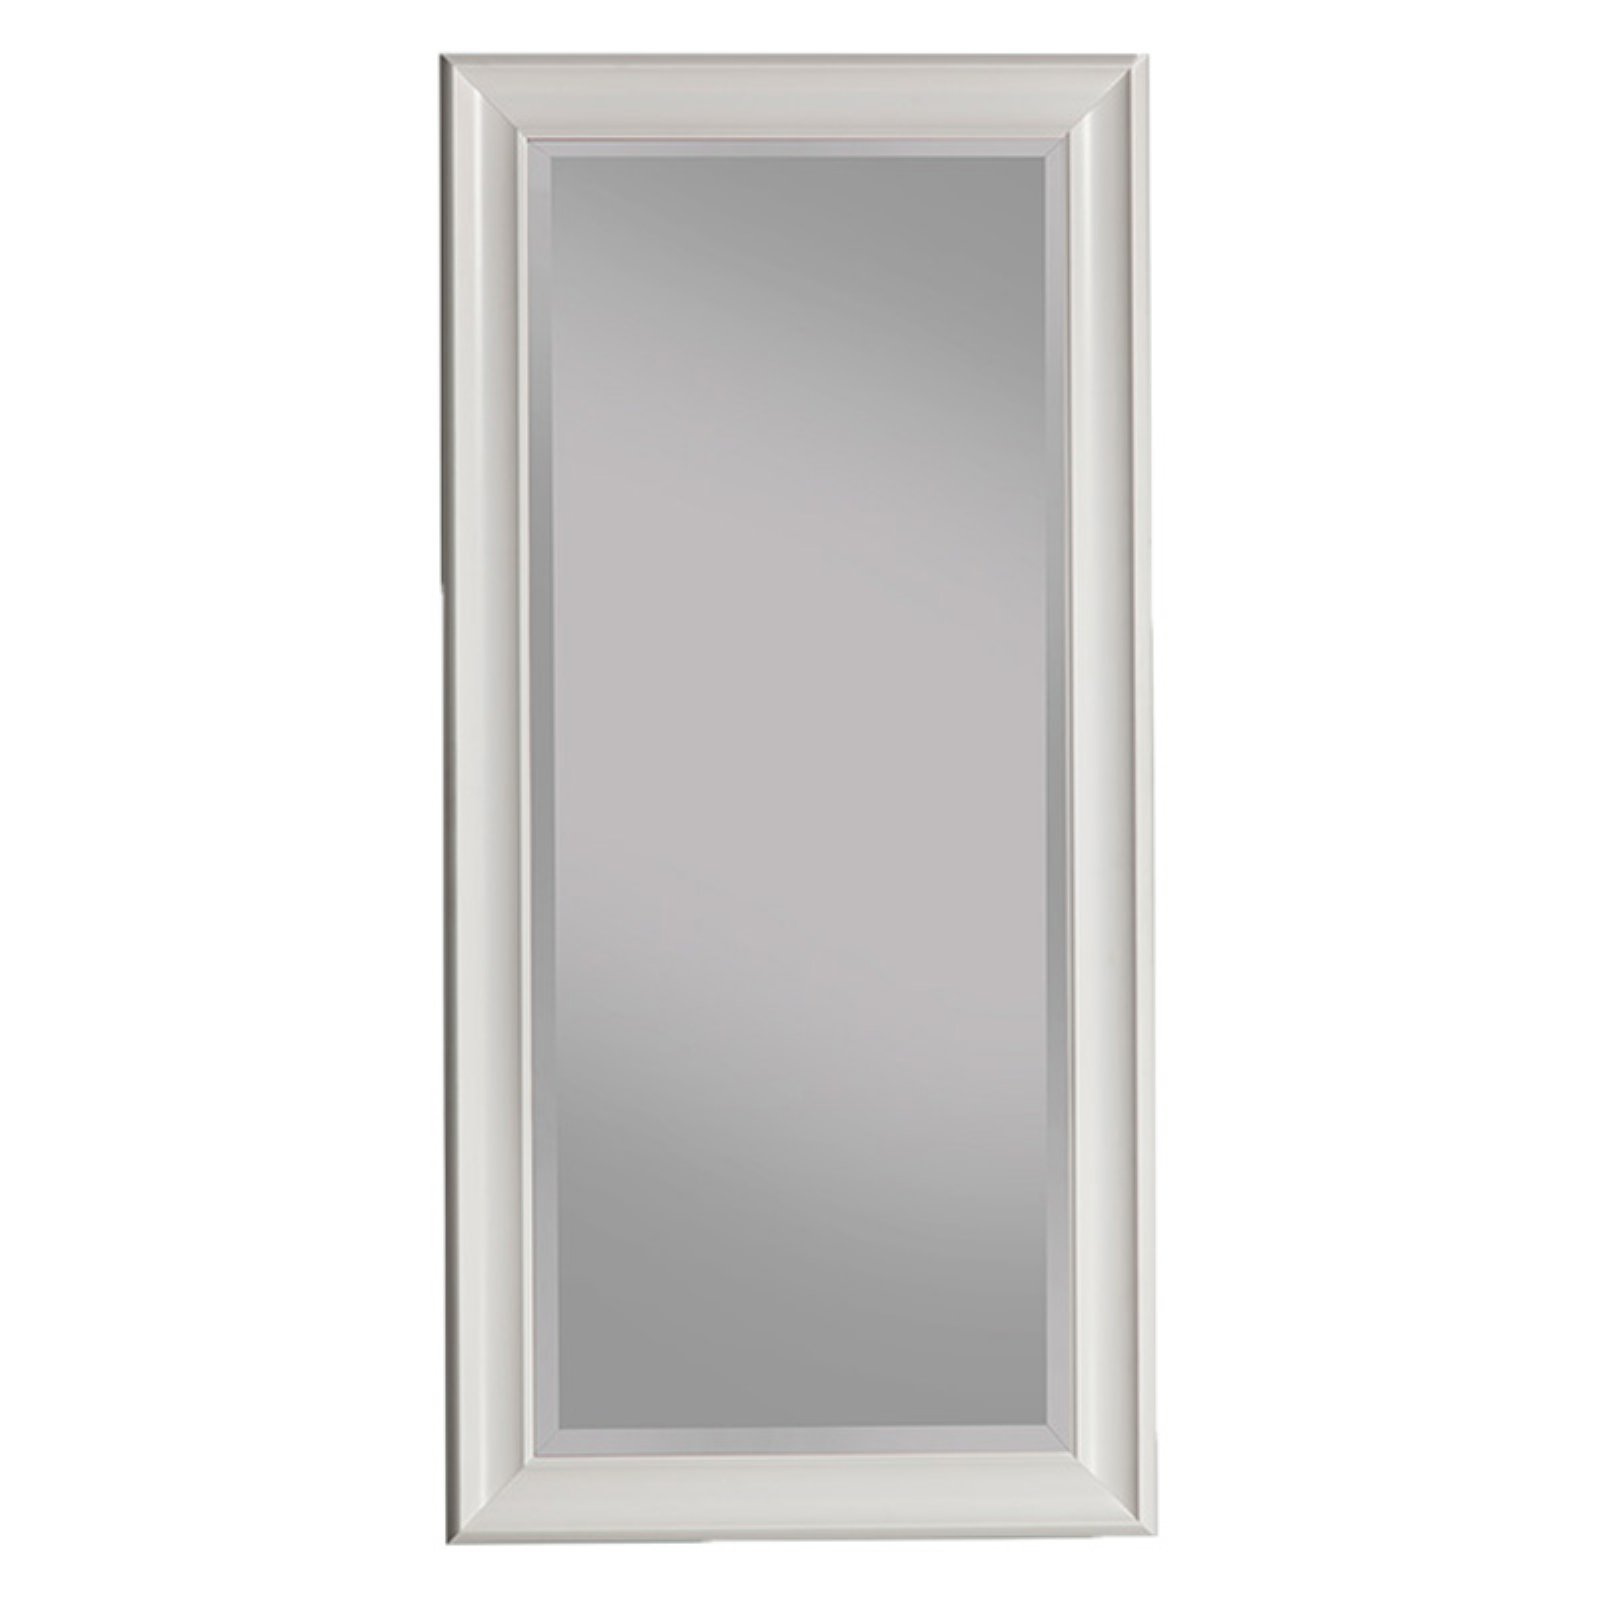 Sandberg Furniture Full Length Leaning Mirror 31W x 65H in. by